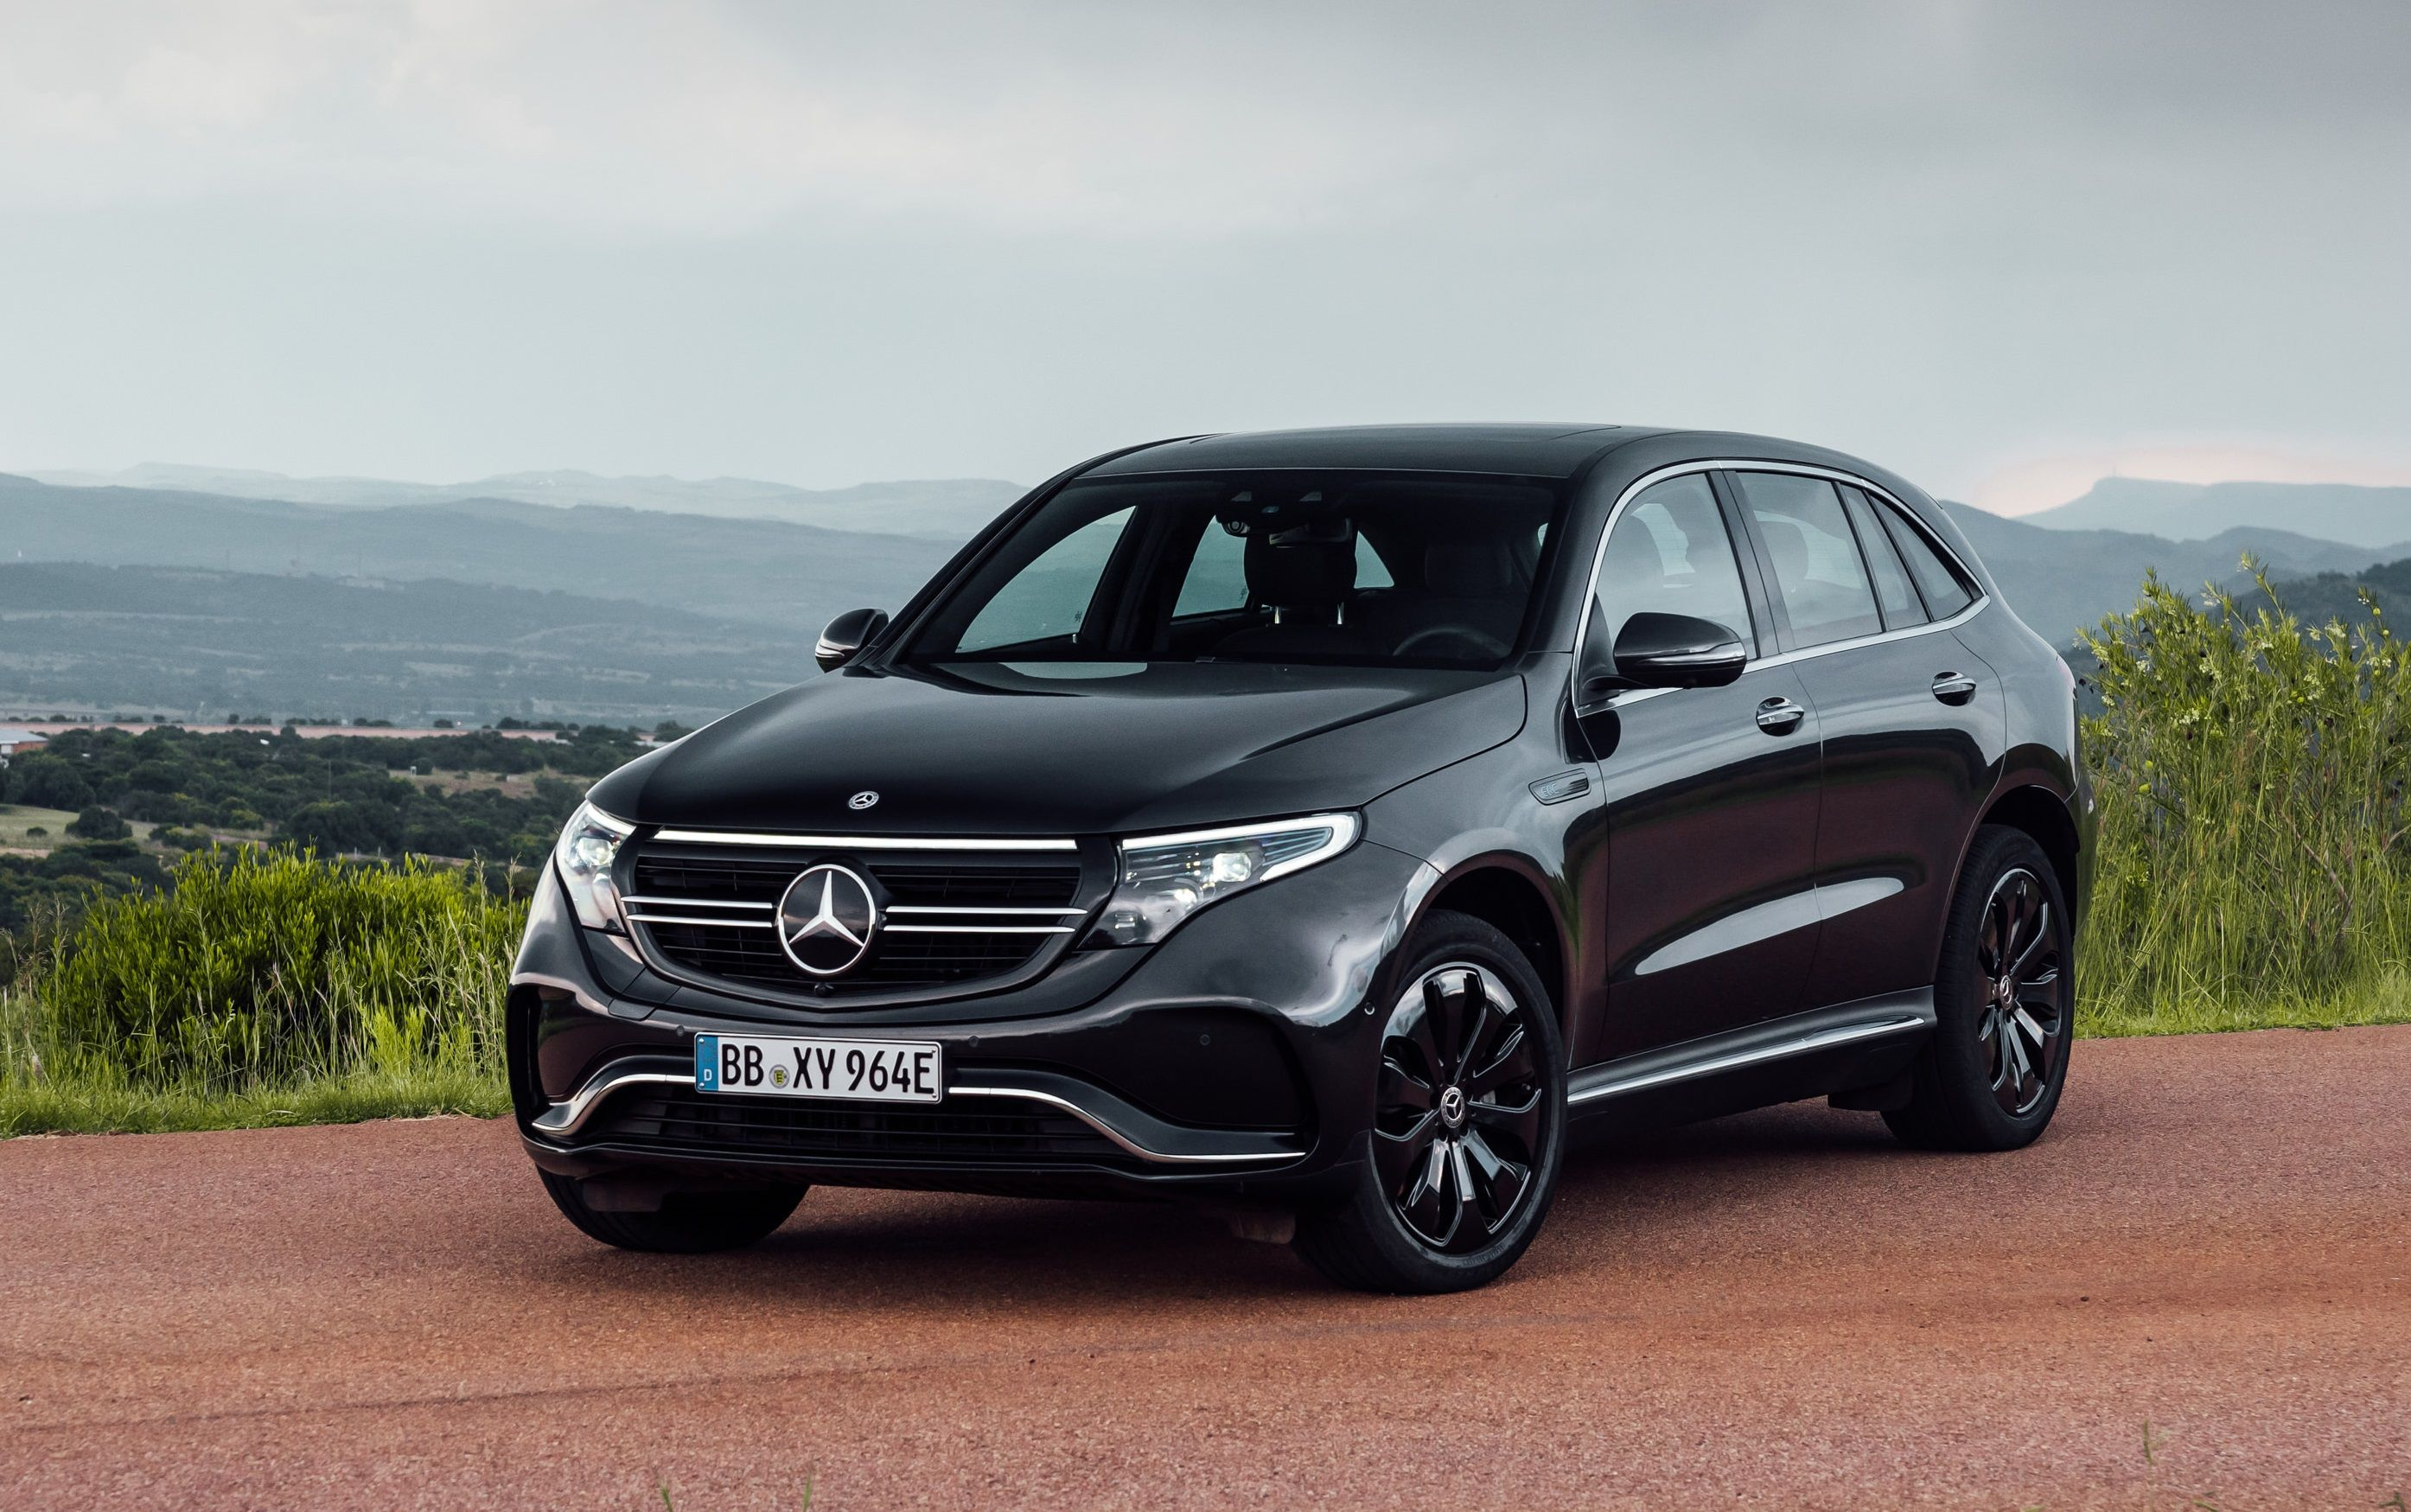 2019 Eqc 400 4matic Amg Mercedes Benz Benz Mercedes Benz Wallpaper